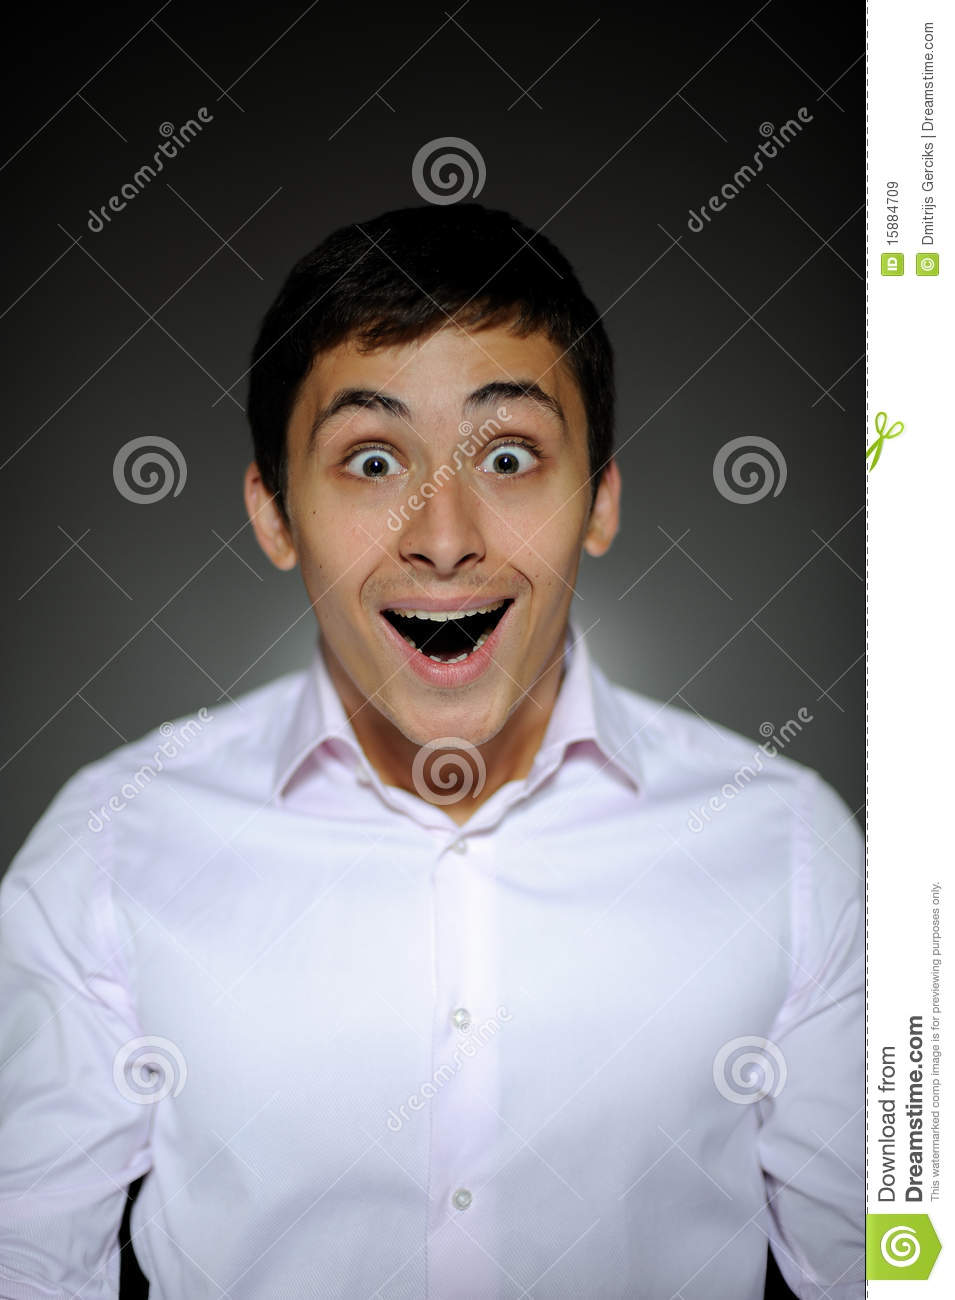 funny expressions of surprise - photo #25